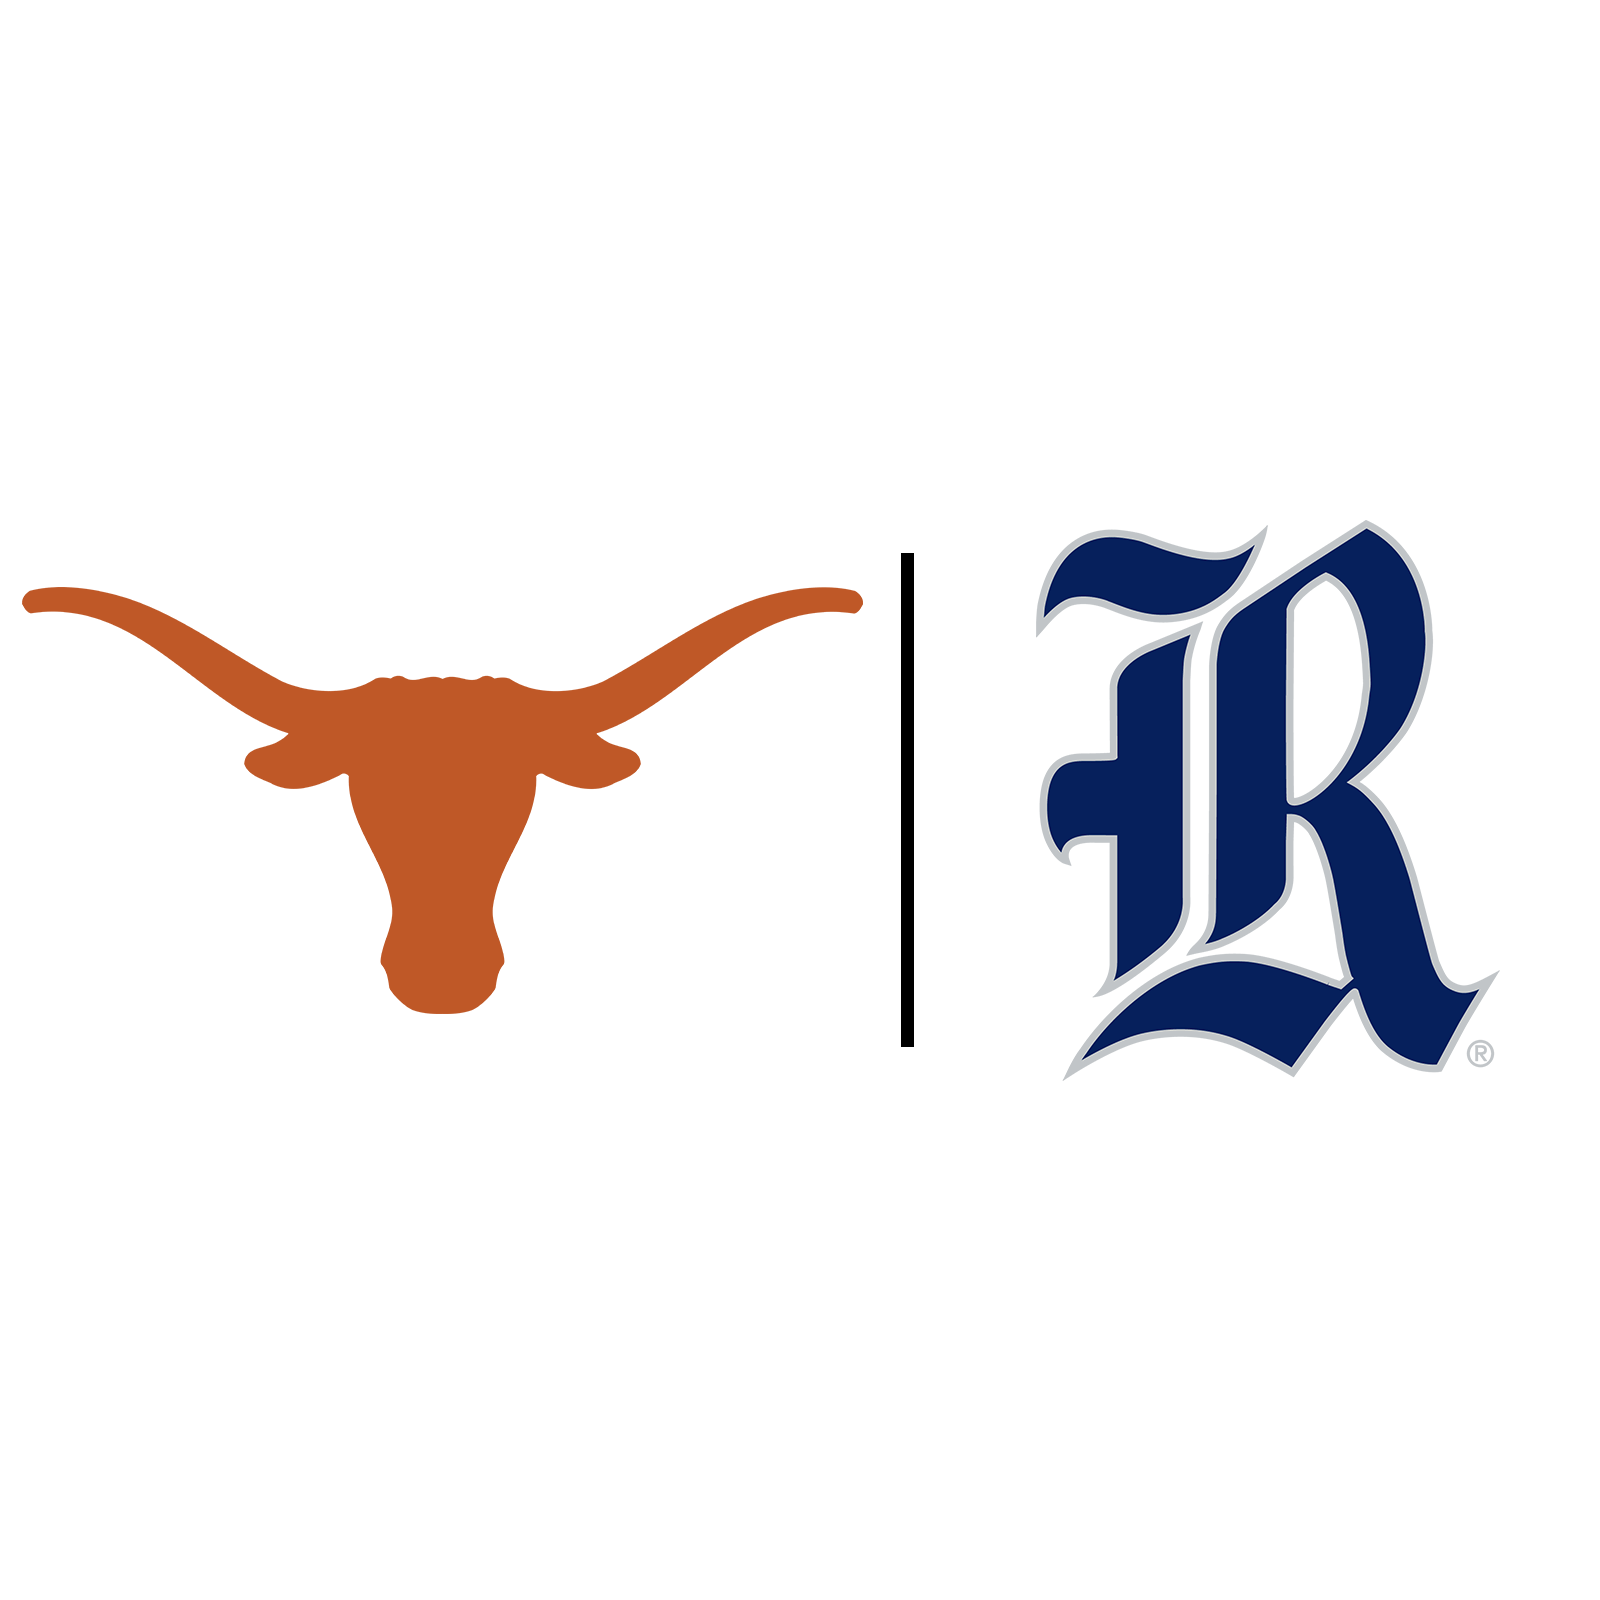 University of Texas vs Rice University